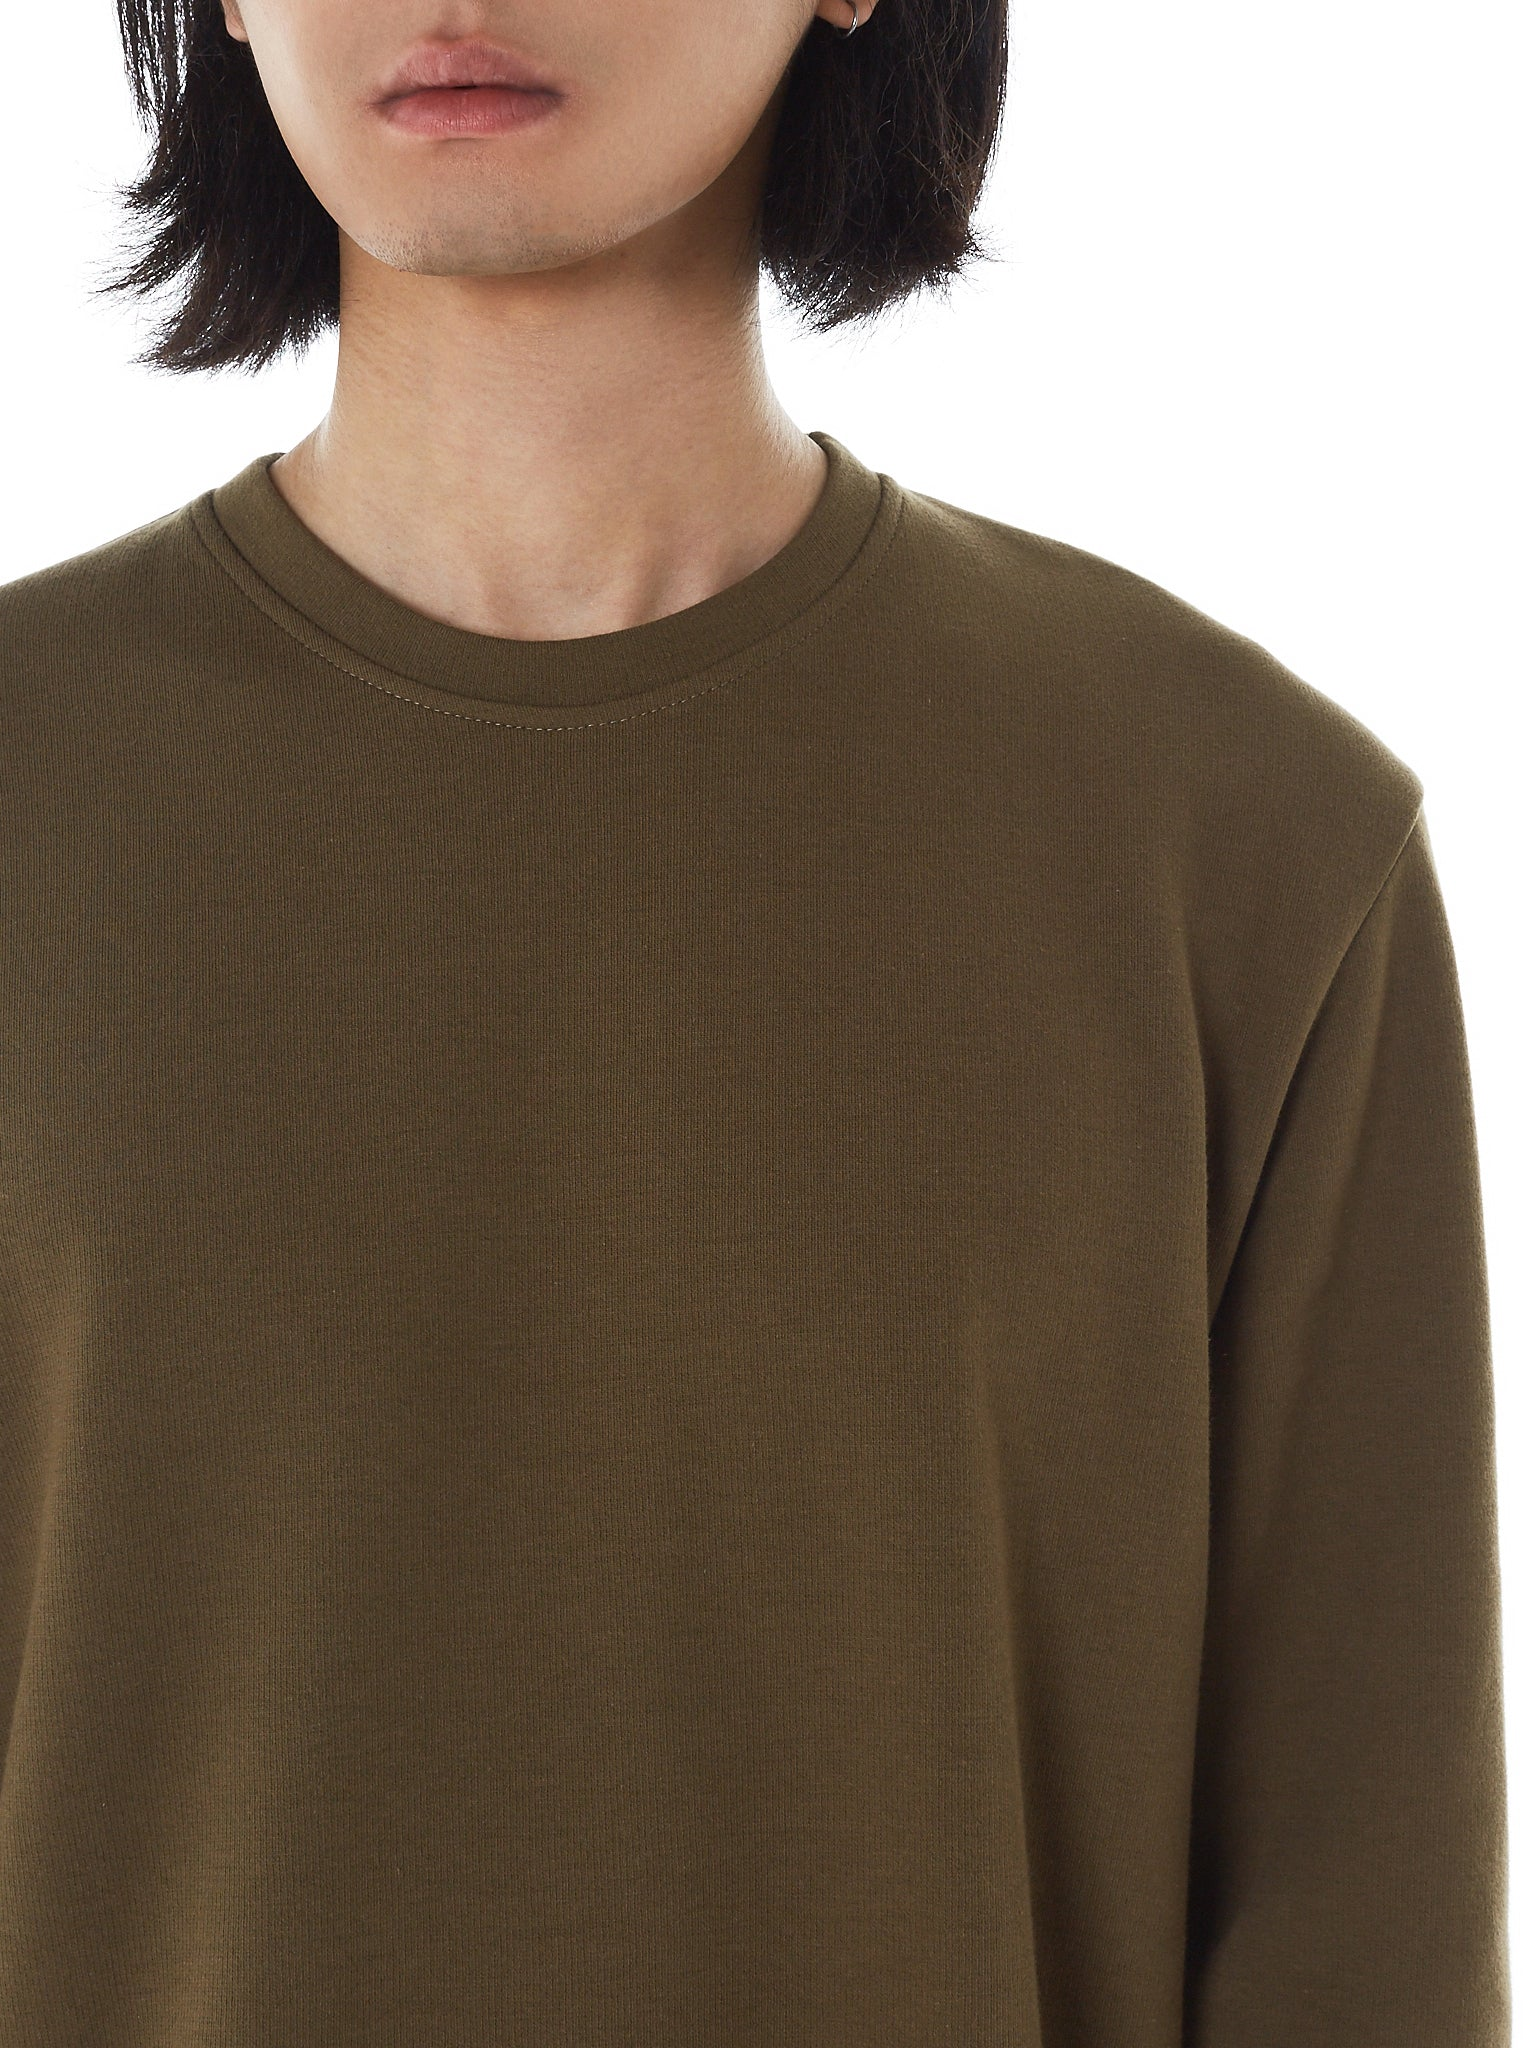 Lost & Found Rooms Sweater - Hlorenzo Detail 1